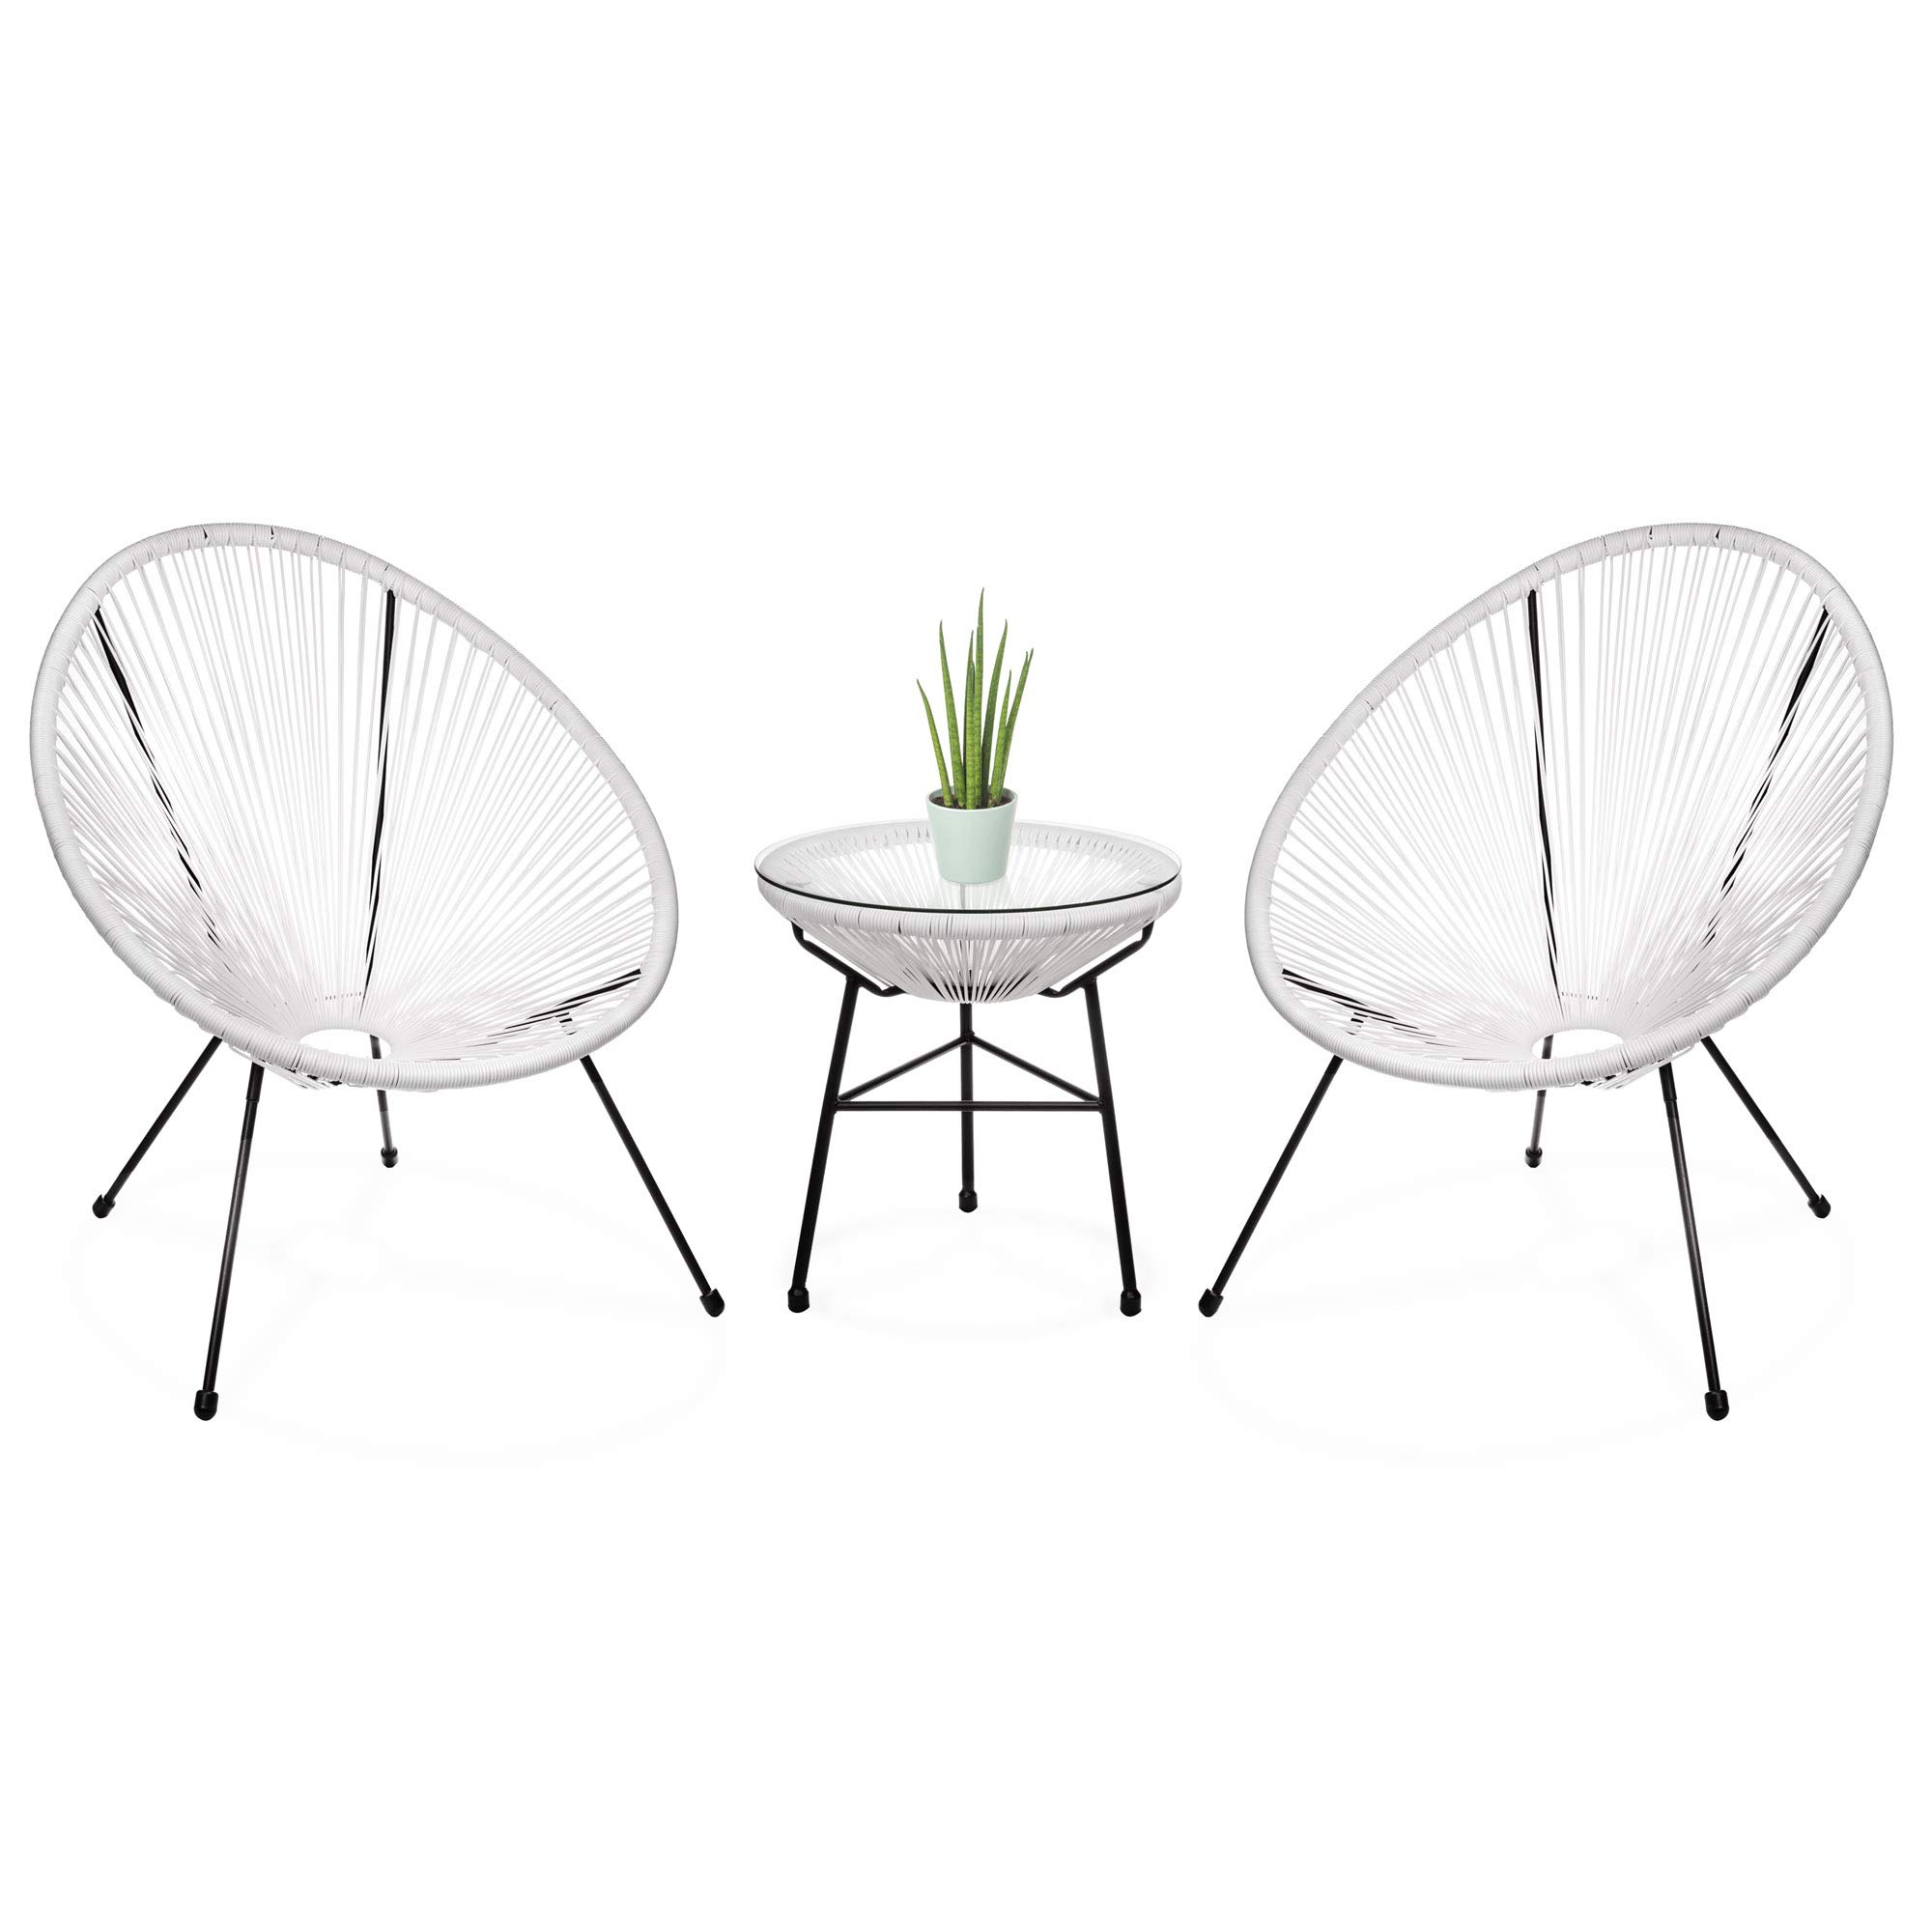 Best Choice Products 3-Piece Patio Woven Rope Acapulco Conversation Bistro Furniture Set w/Glass Top Table - White